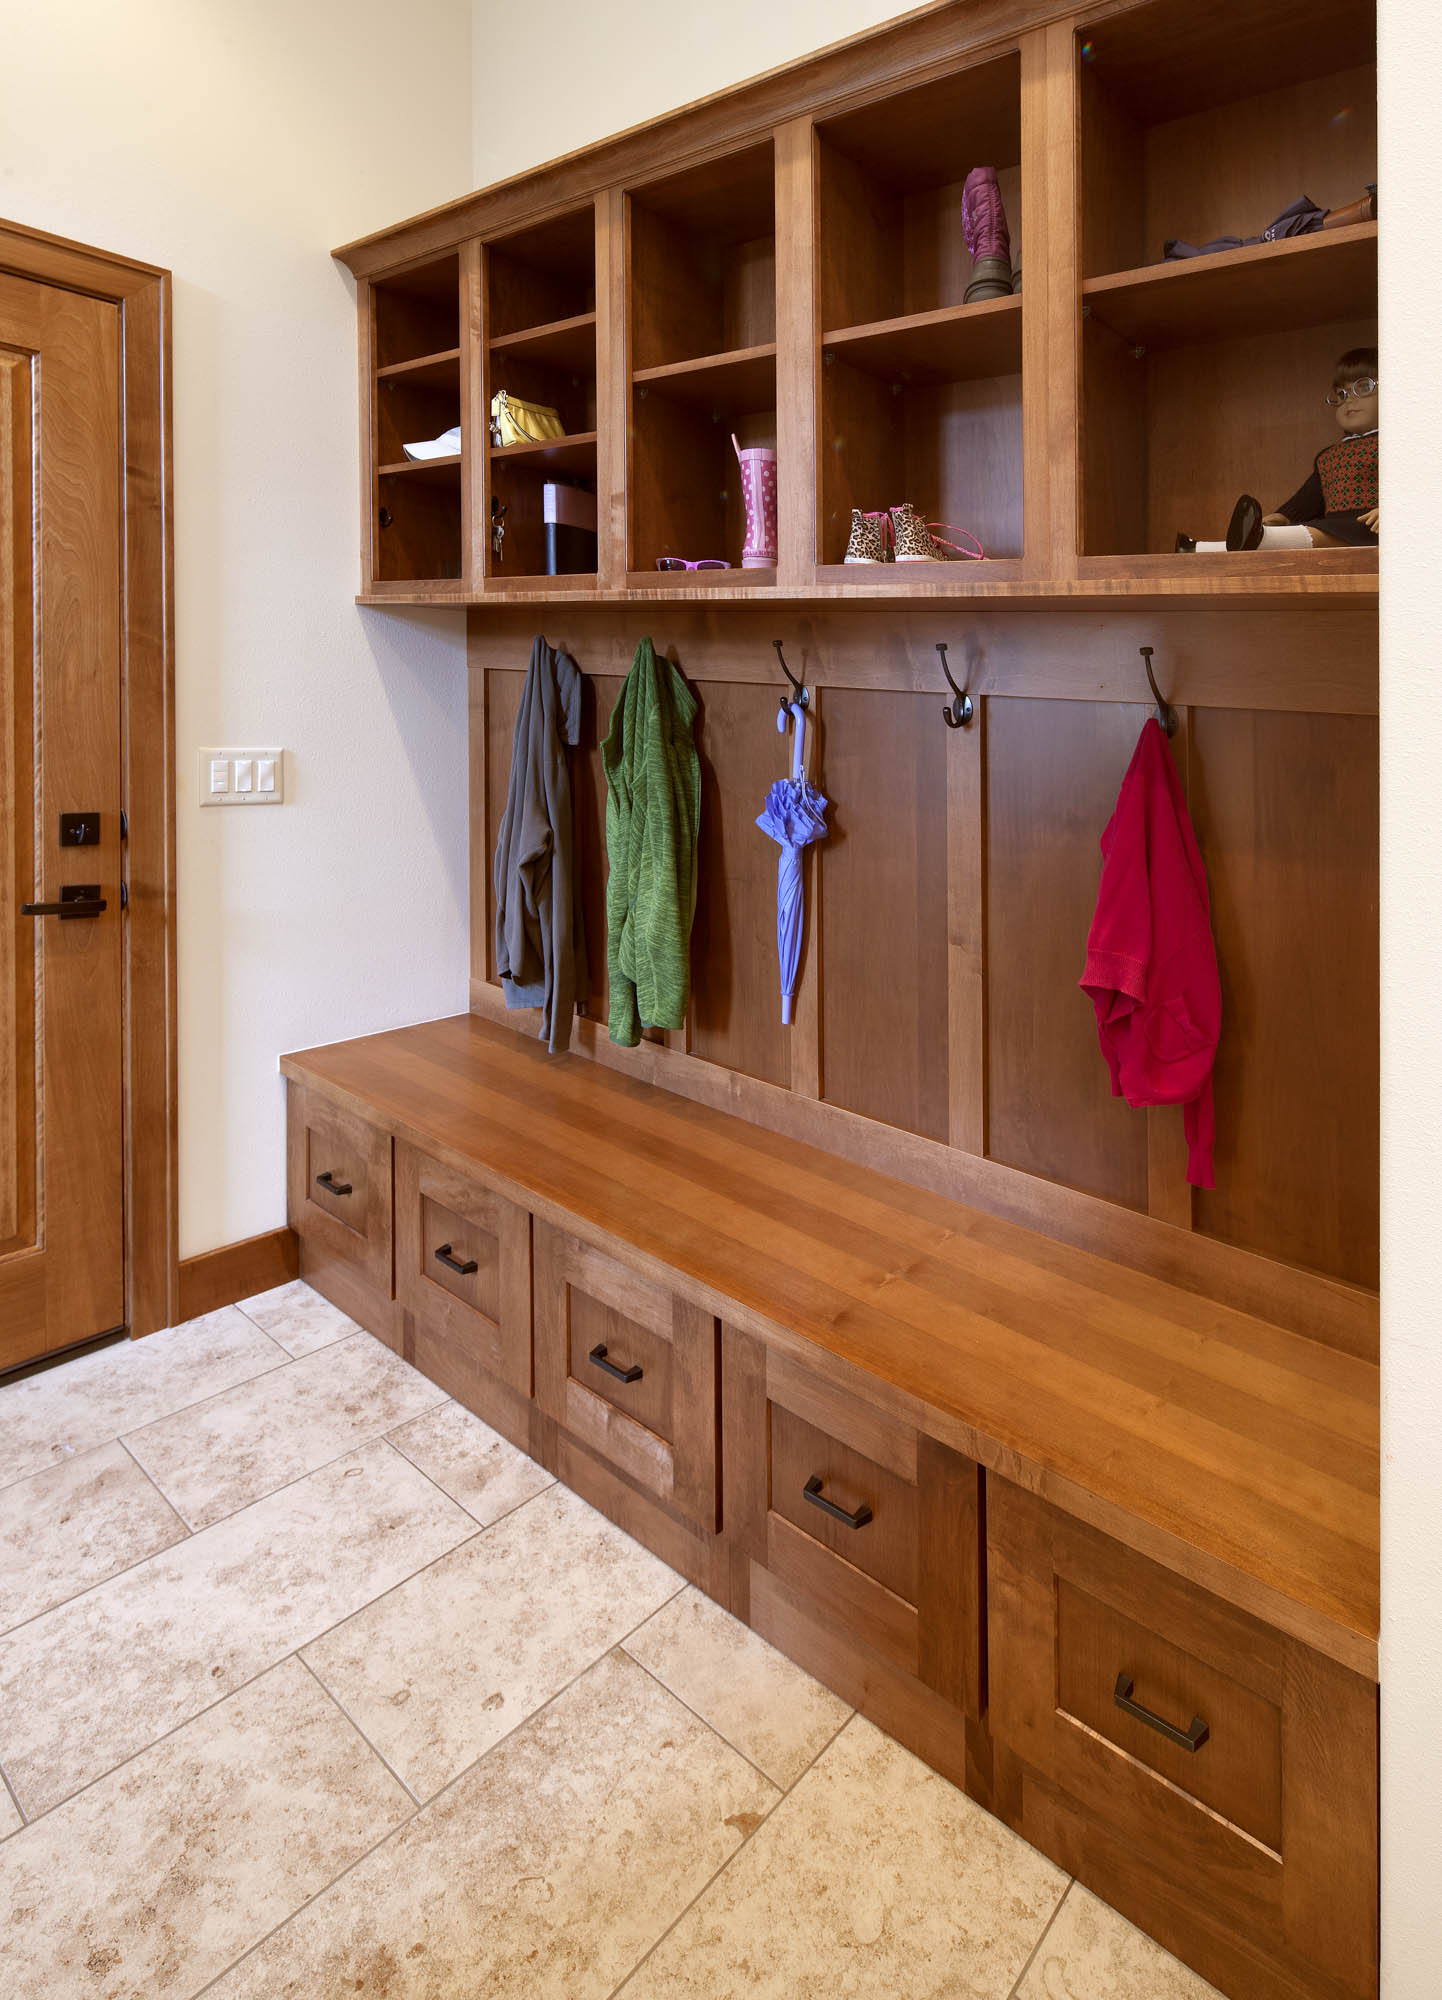 Stained mudroom locker in Autumn/Maple